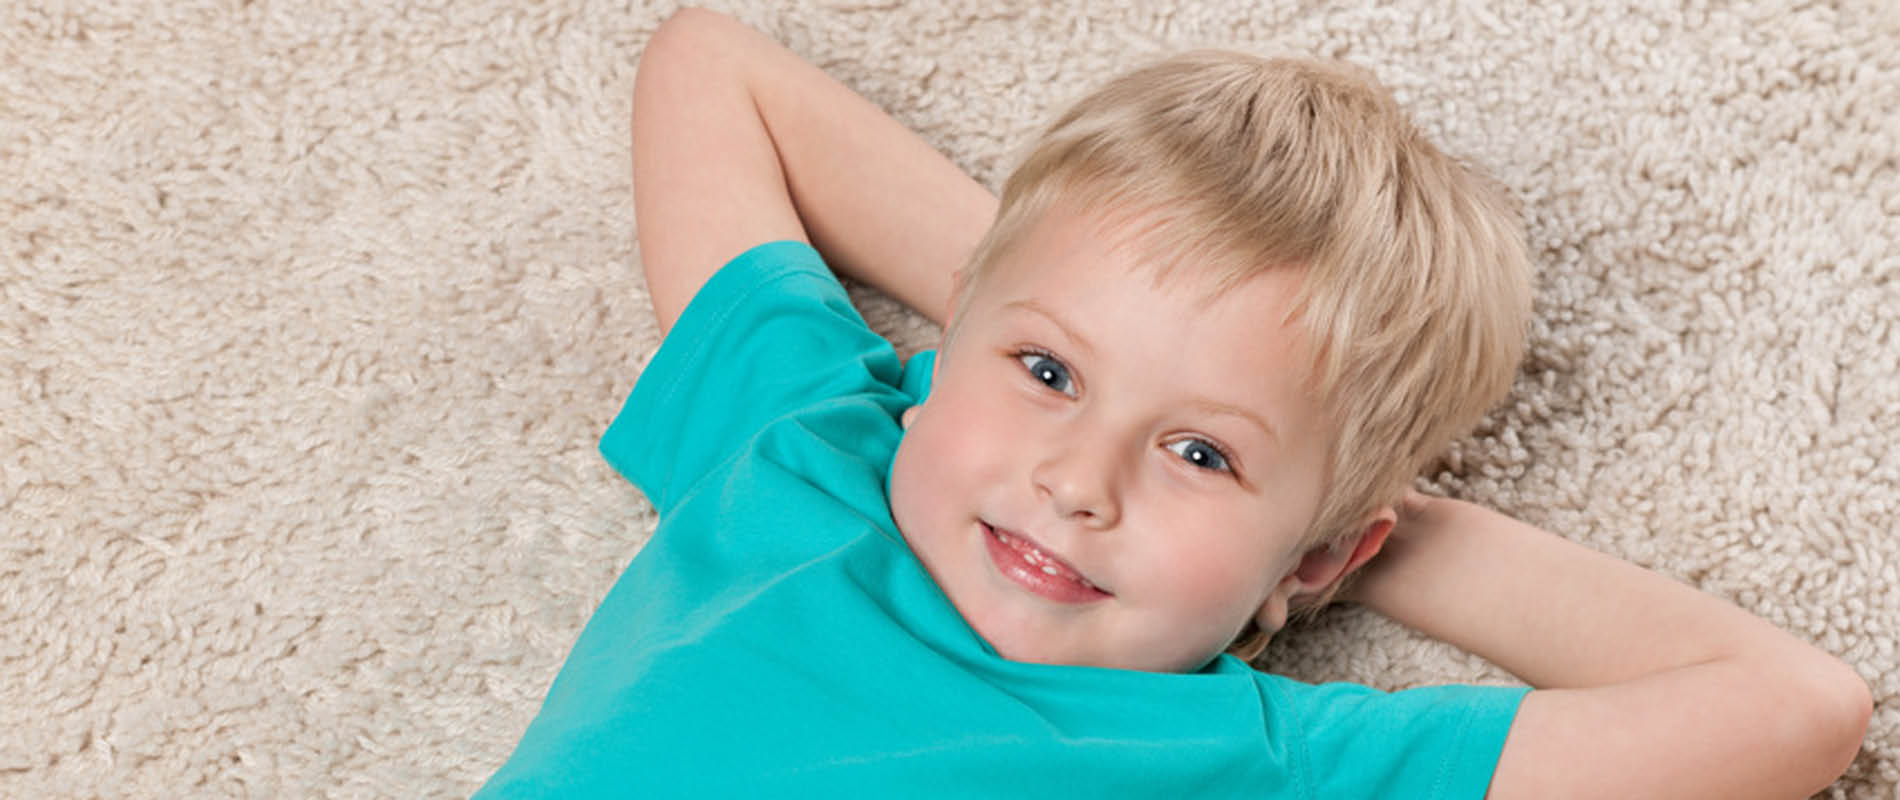 Fuzzy Wuzzy Rug Cleaning - carpet cleaning that is safe for children and pets